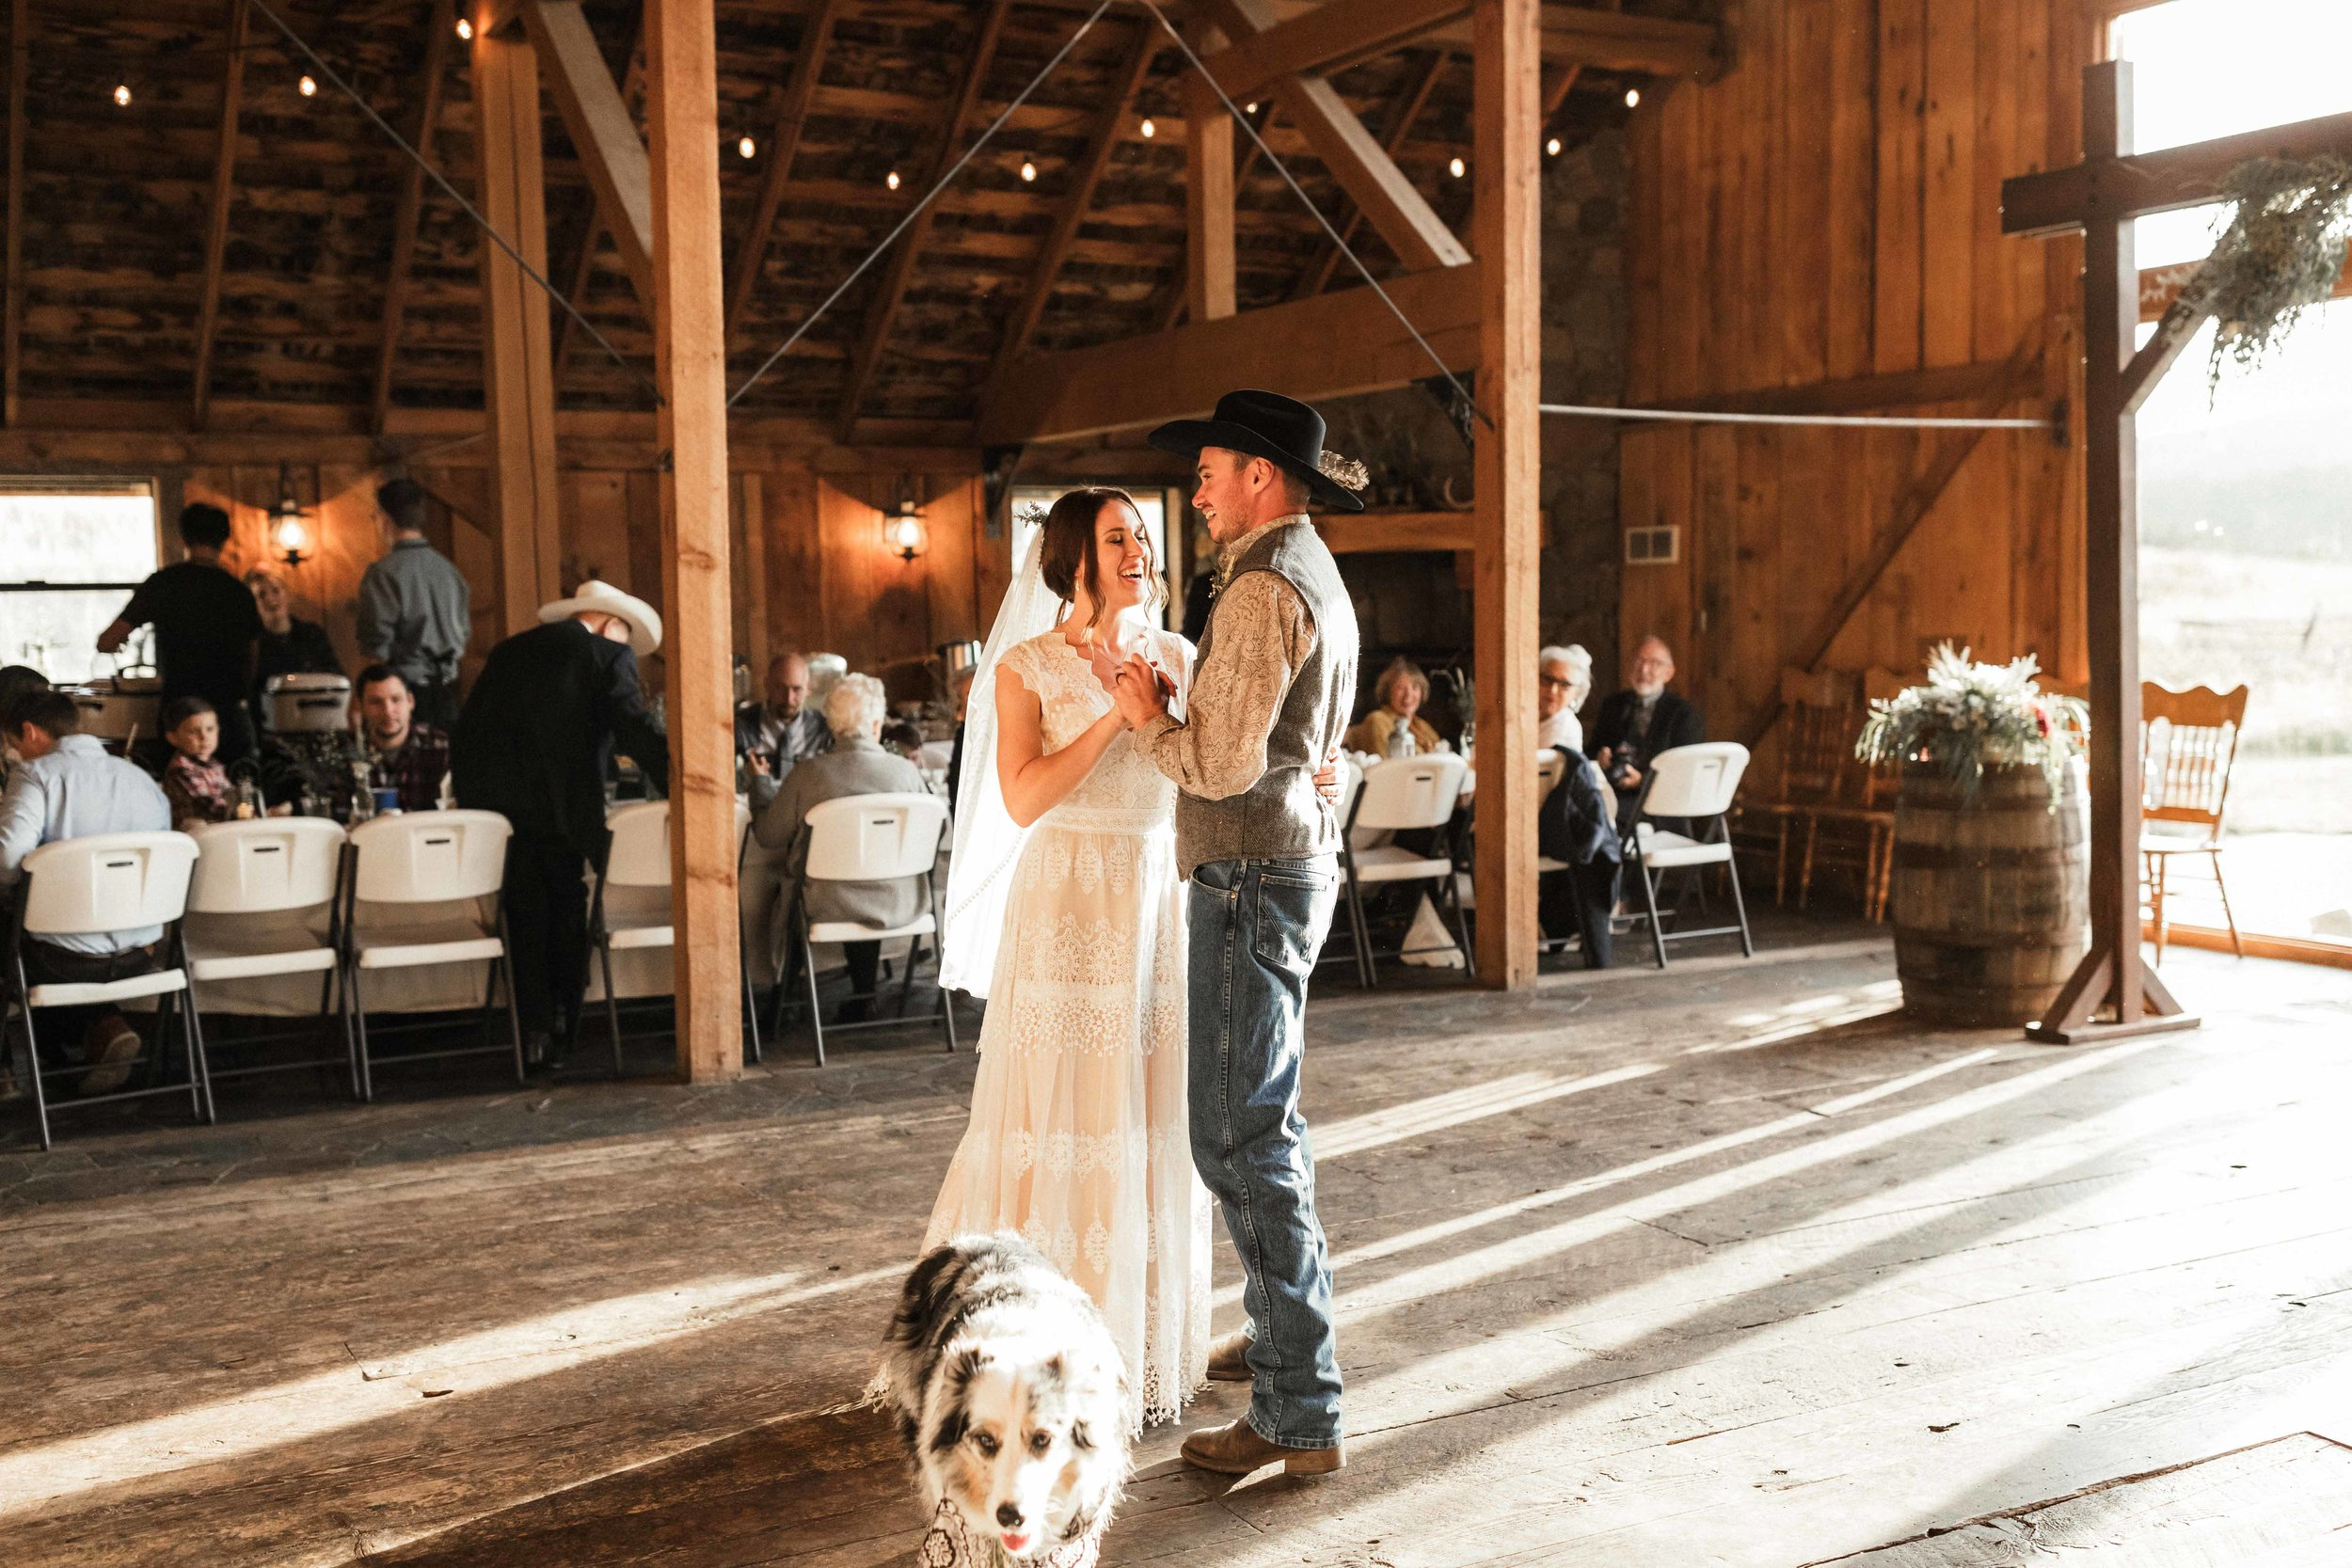 the-cattle-barn-wedding-69.jpg